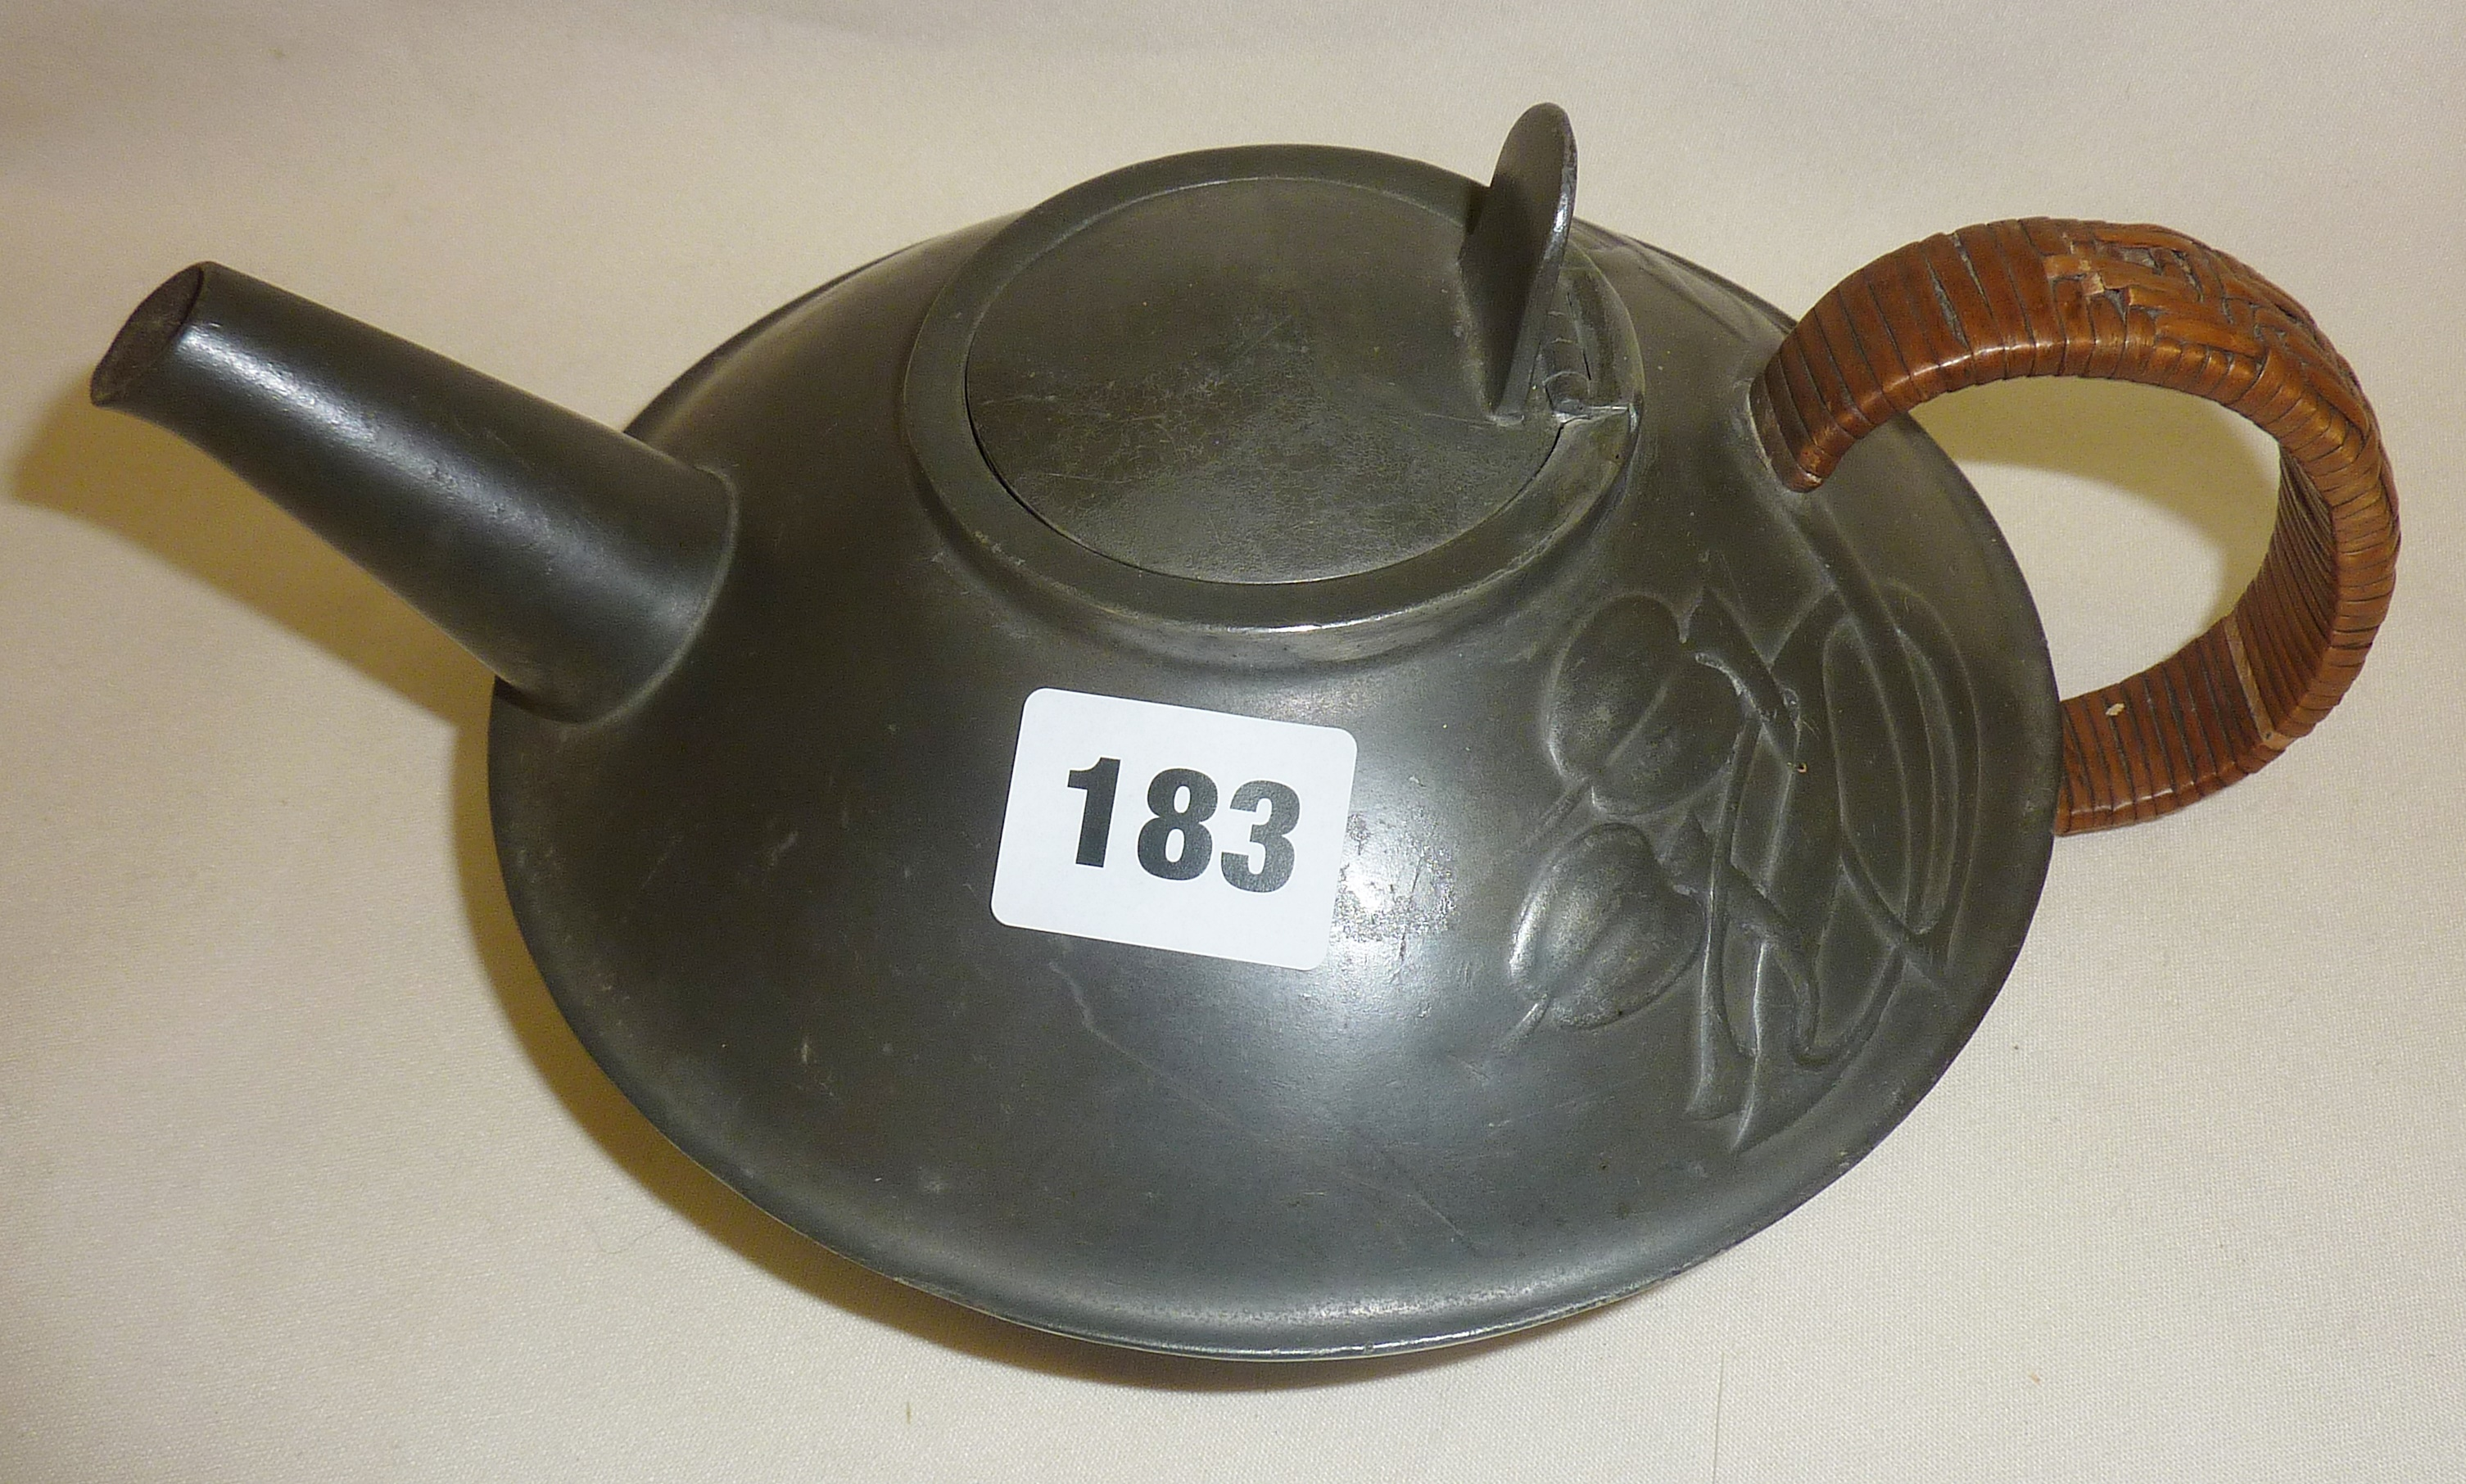 Archibald Knox designed Arts and Crafts Tudric Pewter teapot 0231, retailed by Liberty & Co